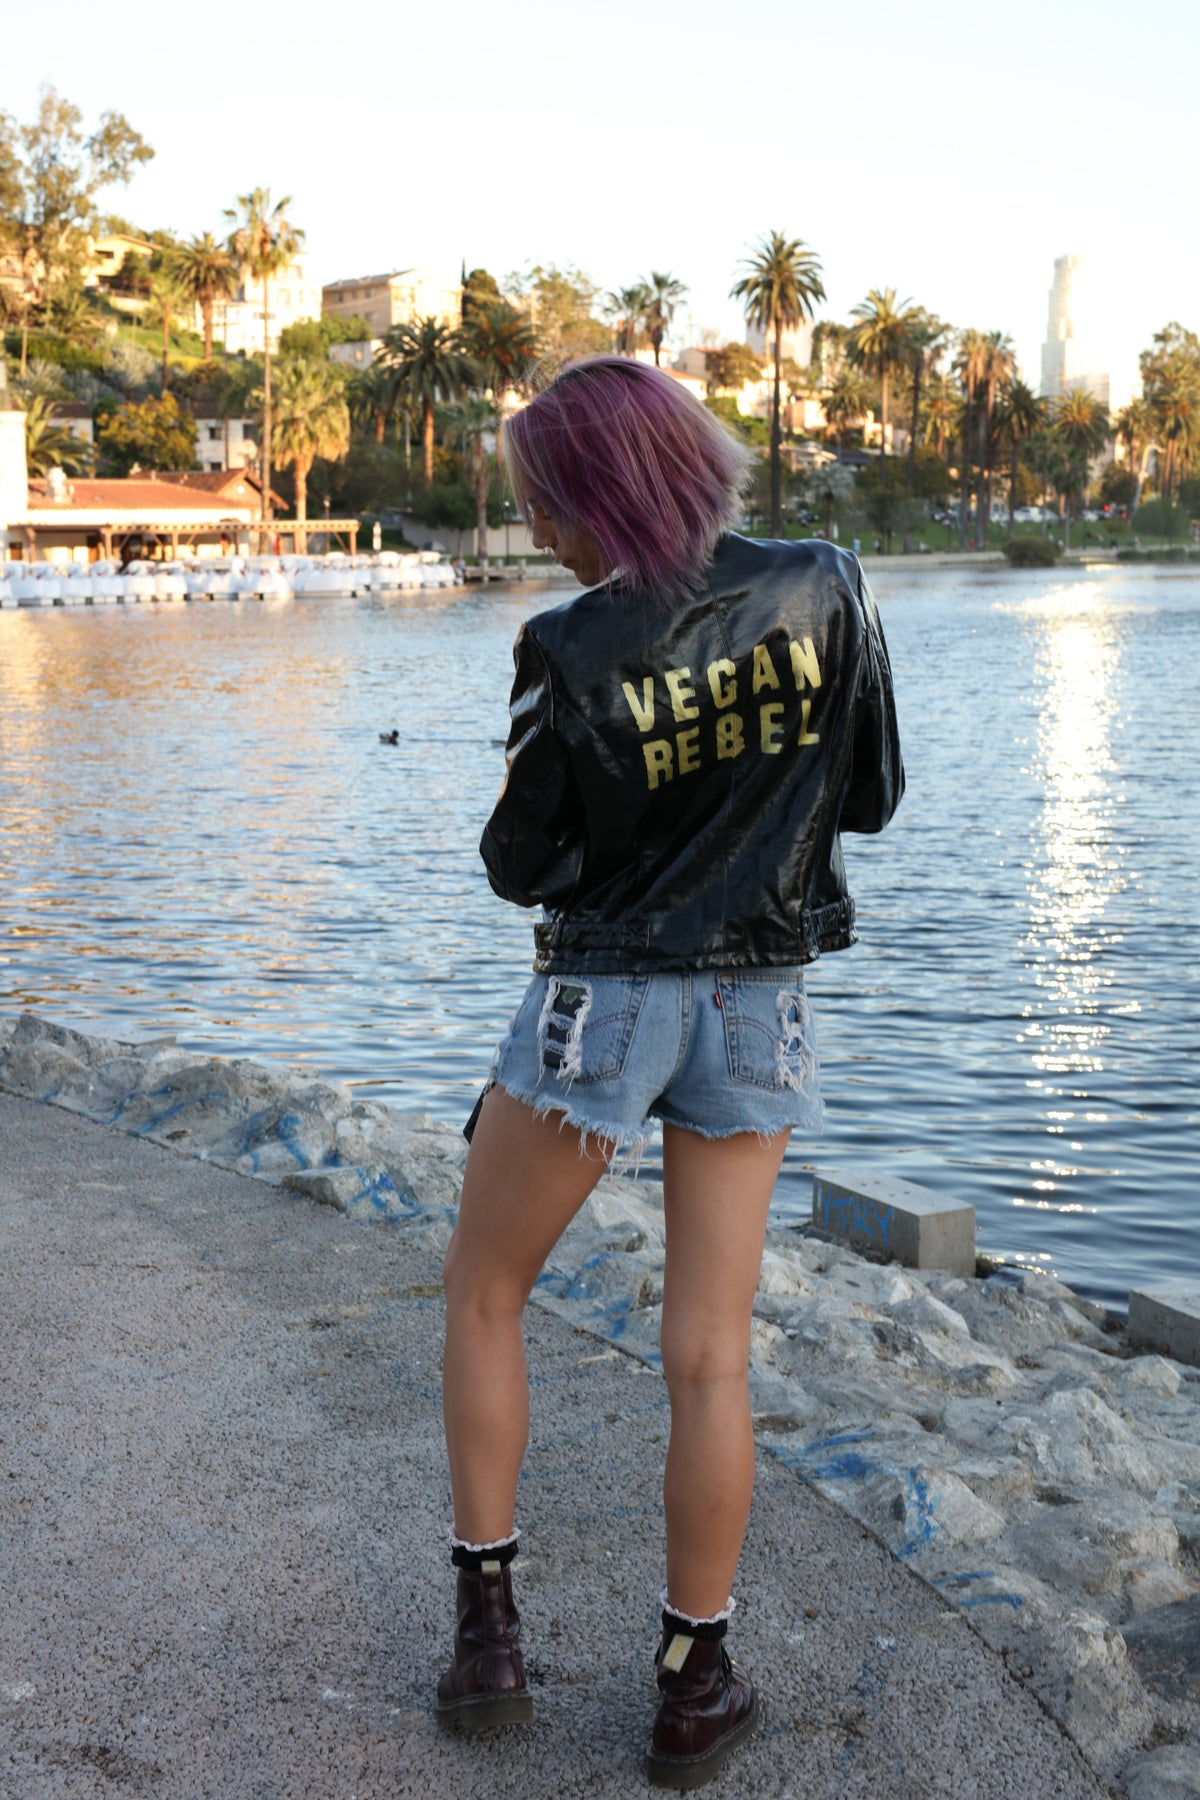 Vegan Rebel Shiny Faux Leather Jacket a la Thriller